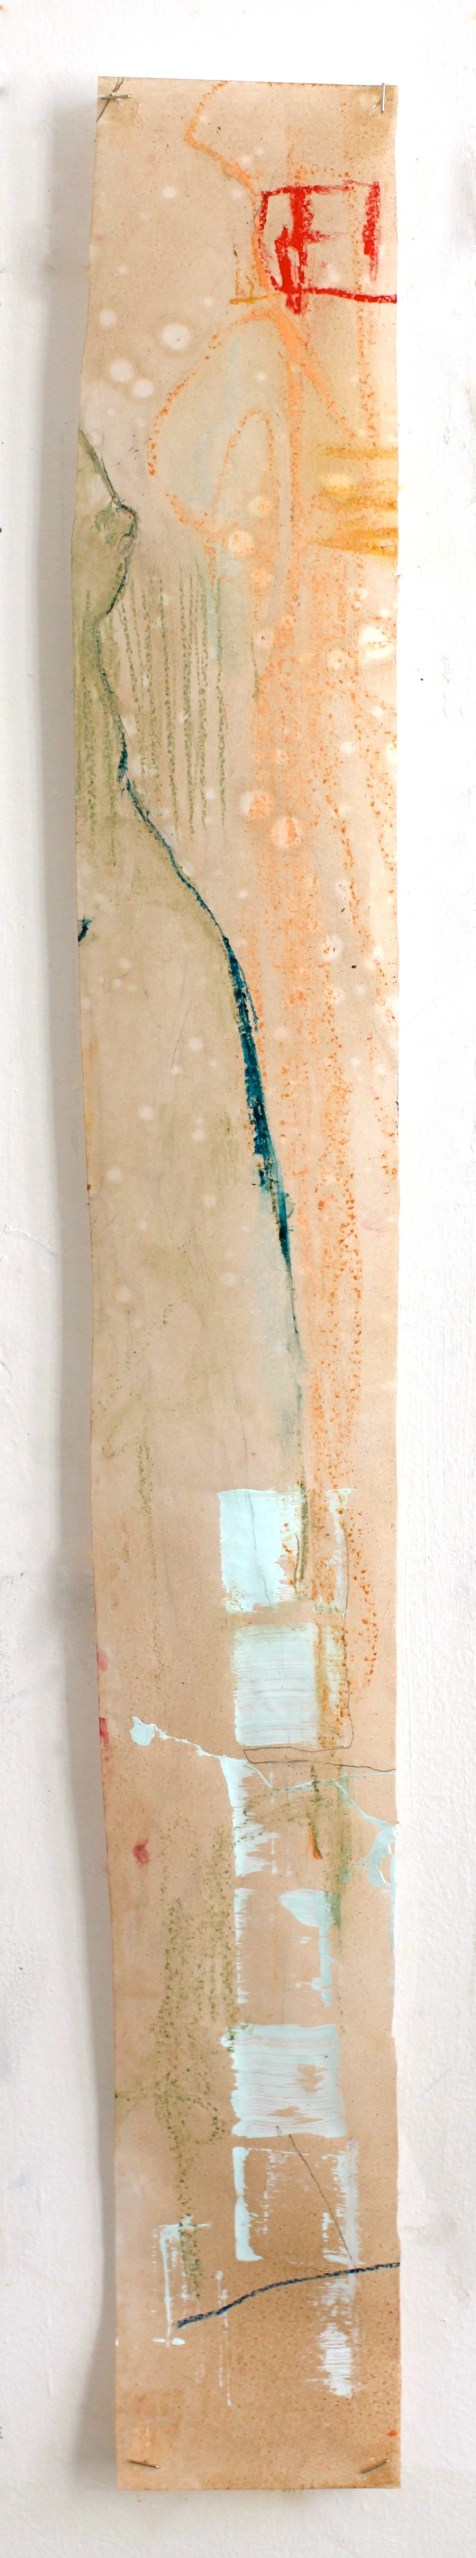 (Not for Sale) In Line - mixed media on vellum - 42x5 inches - 2012